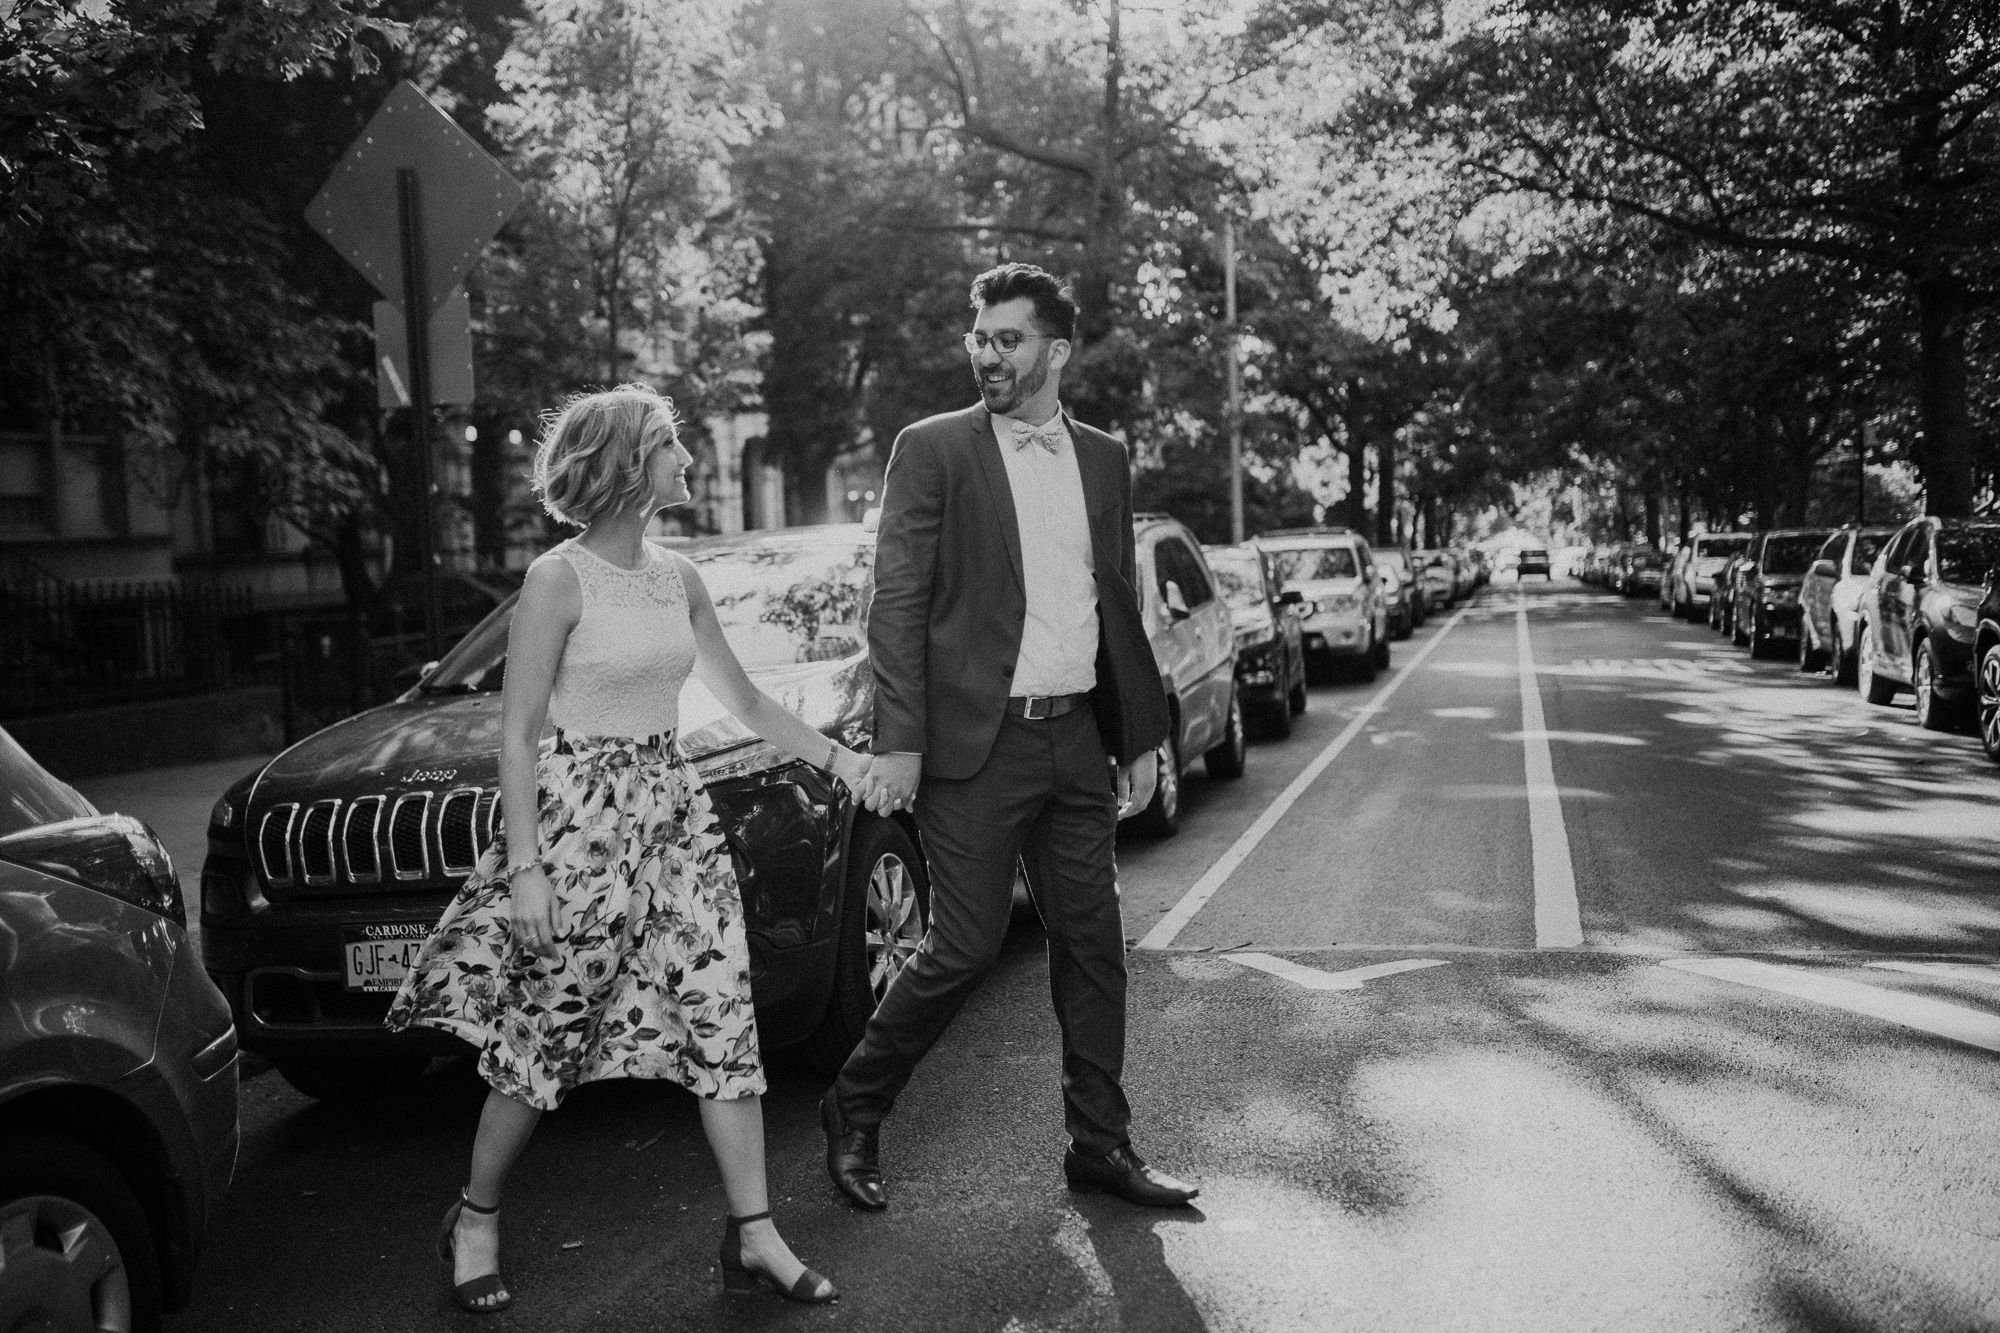 brooklyn_nyc_engagement_photography-11-of-83.jpg